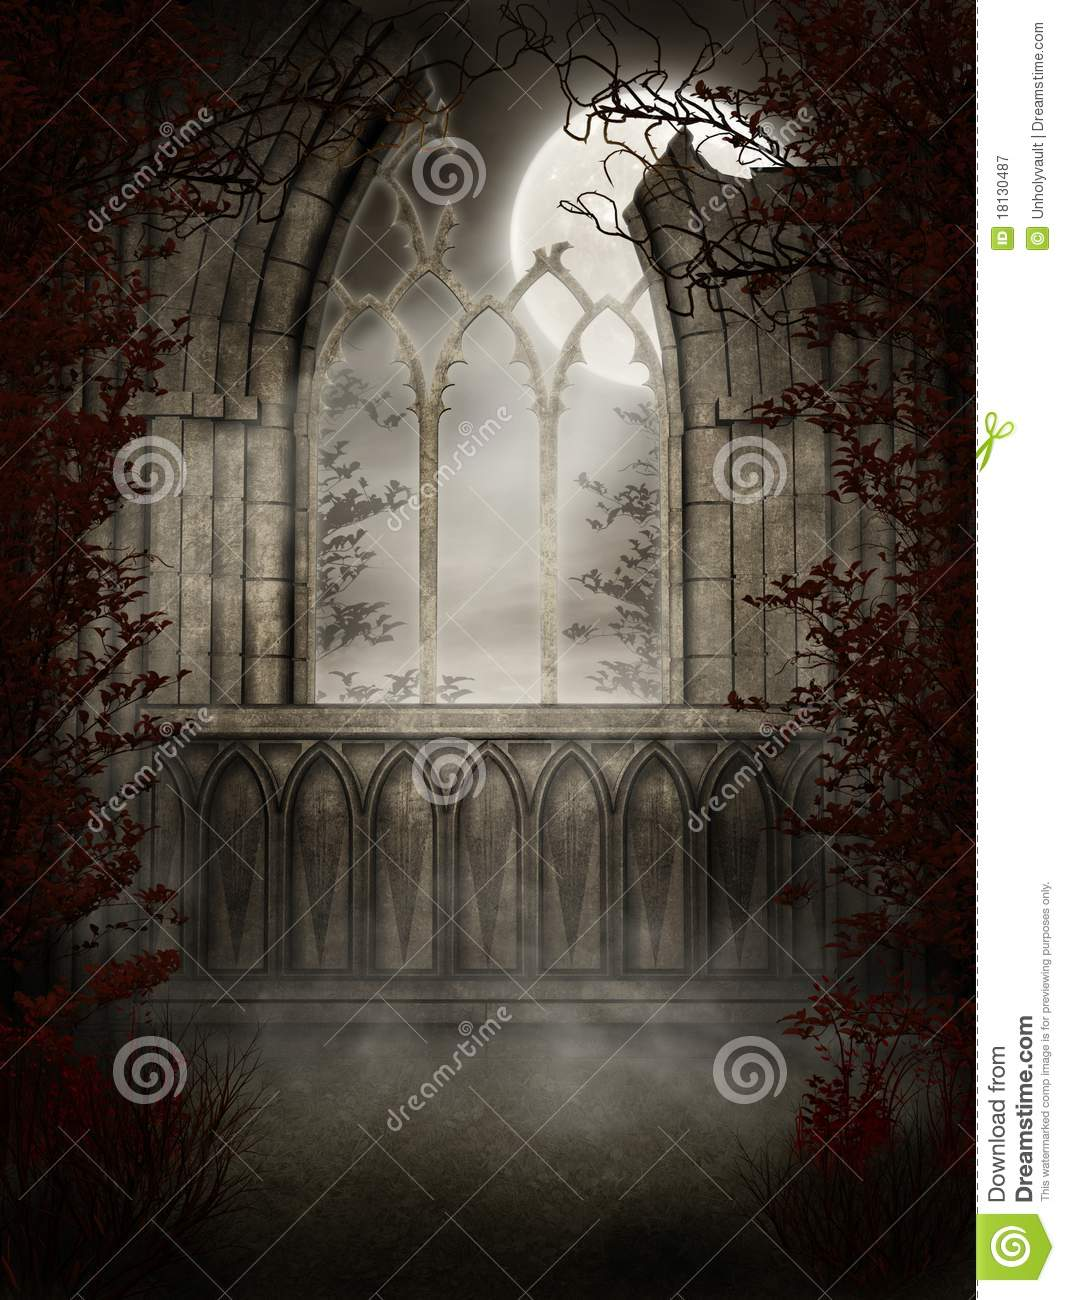 Gothic window with thorns